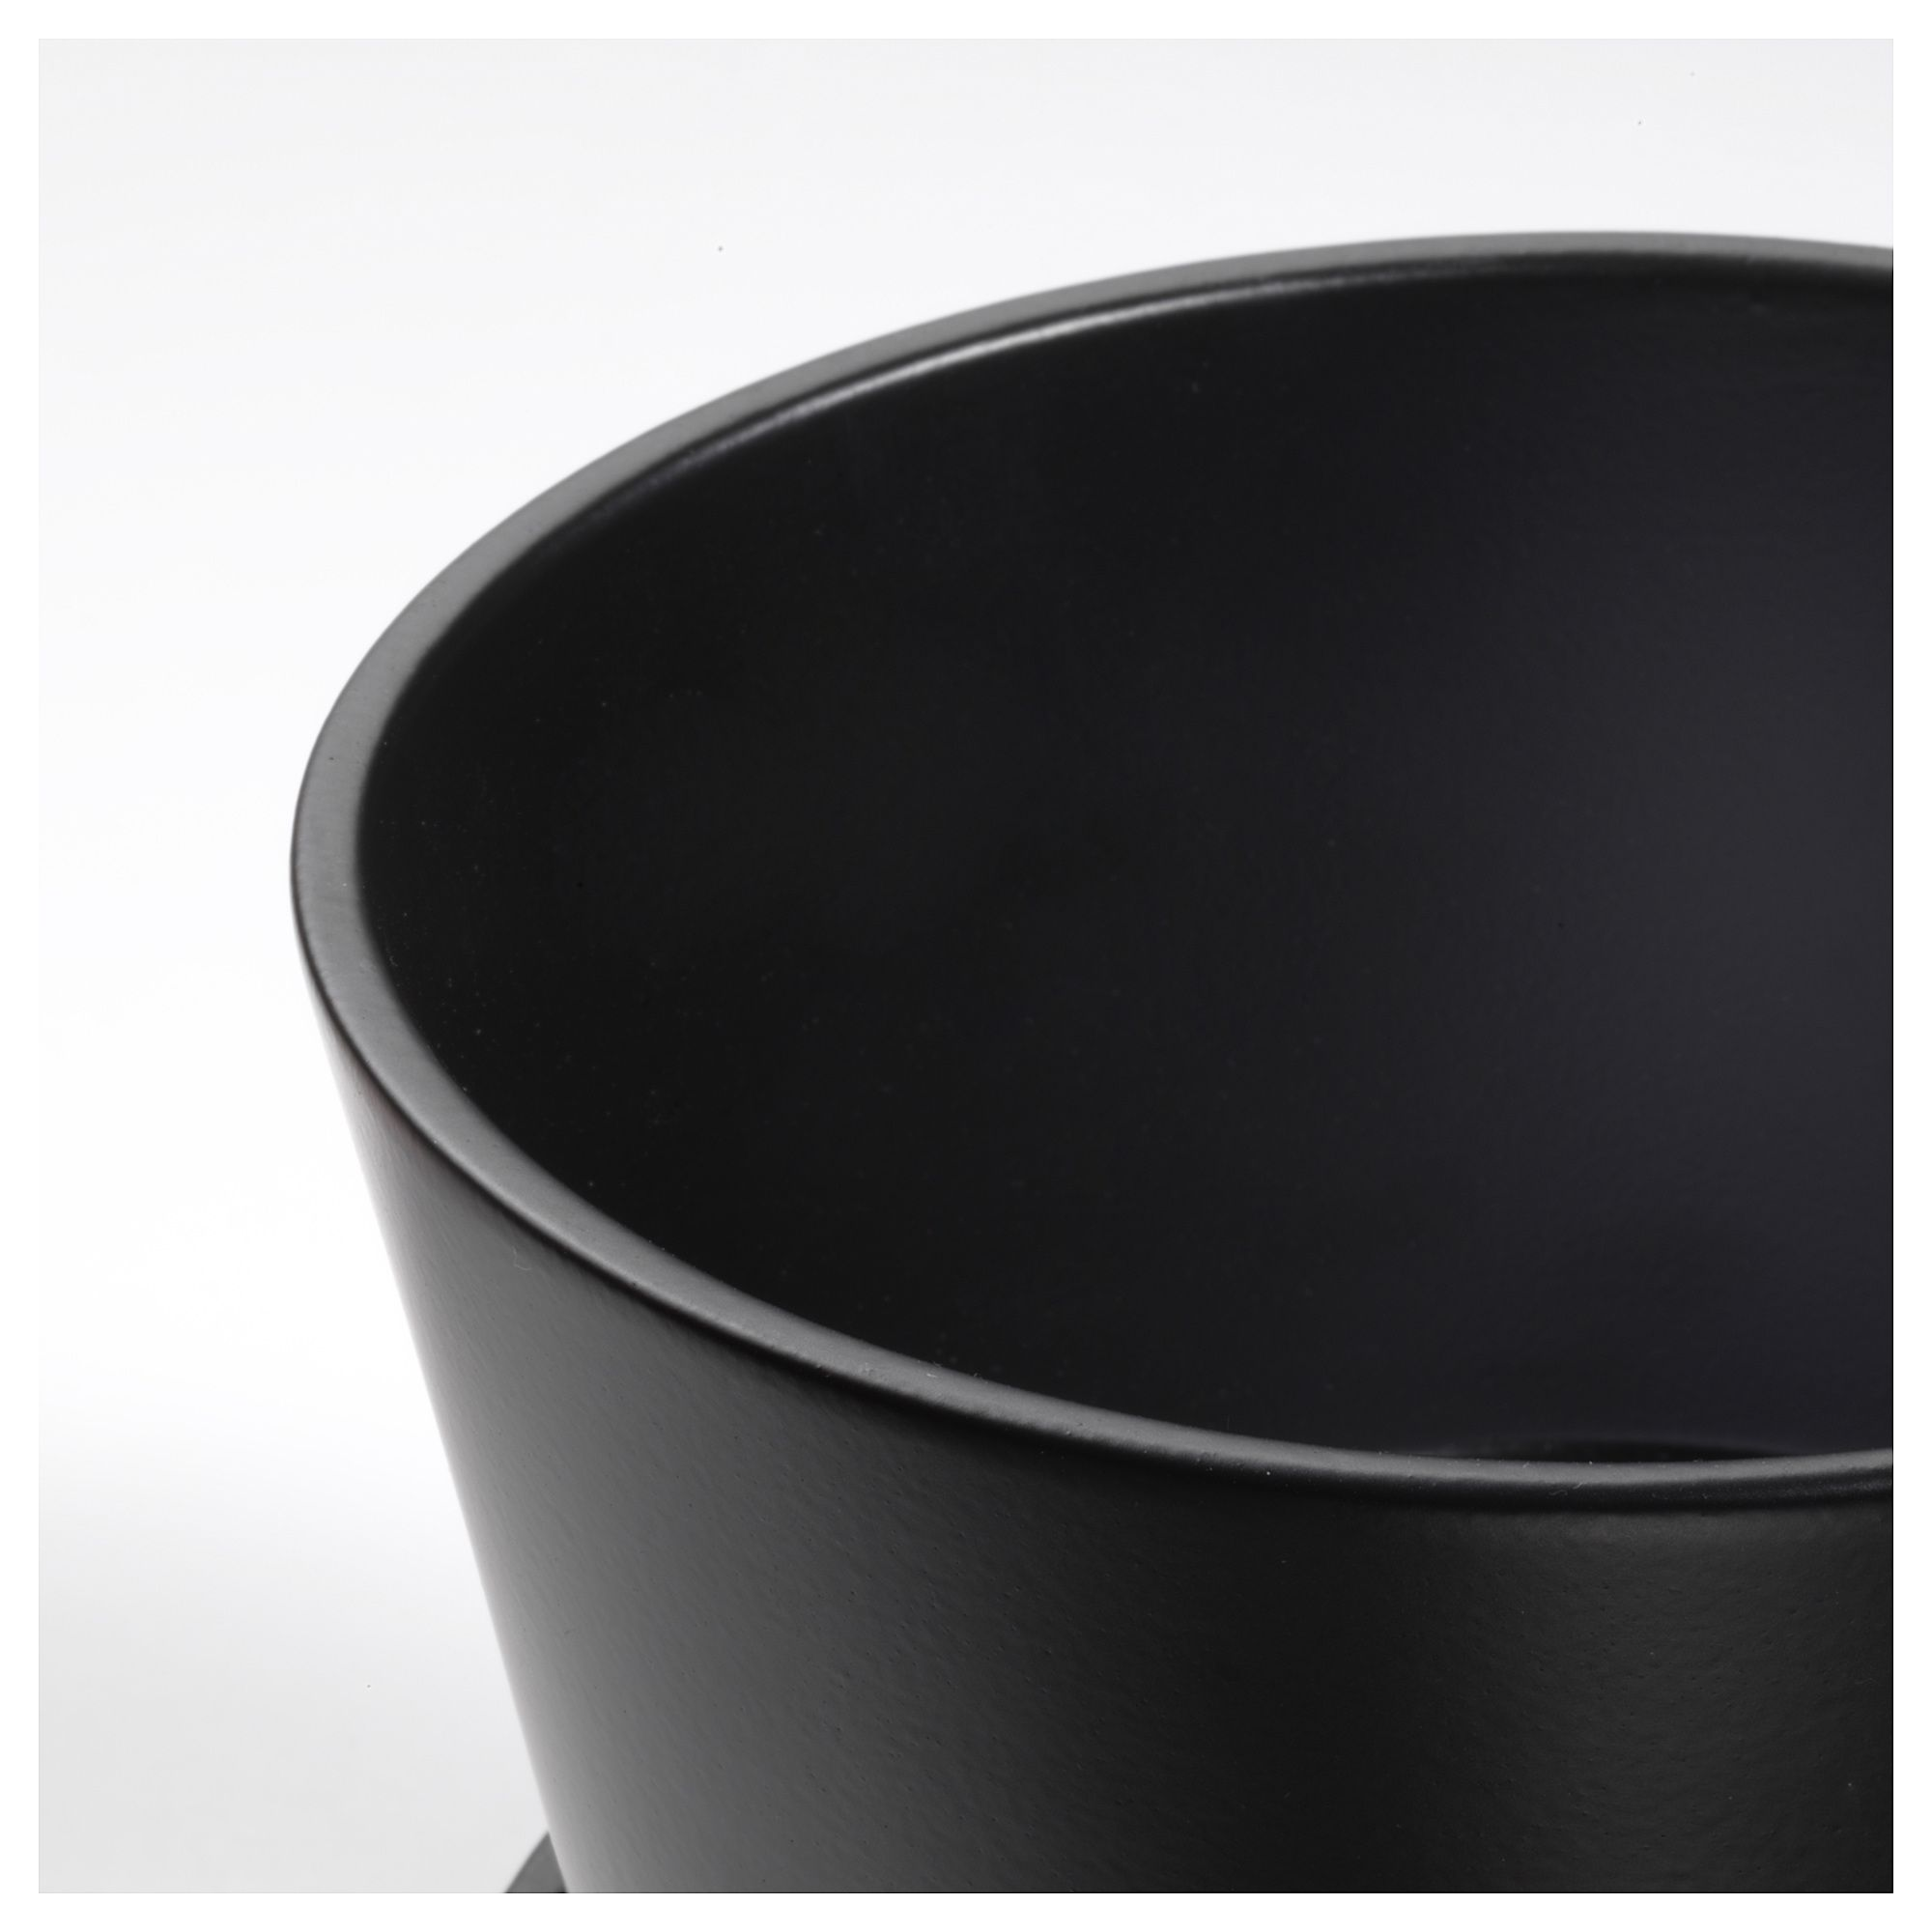 IKEA - SENAP Plant pot with saucer black